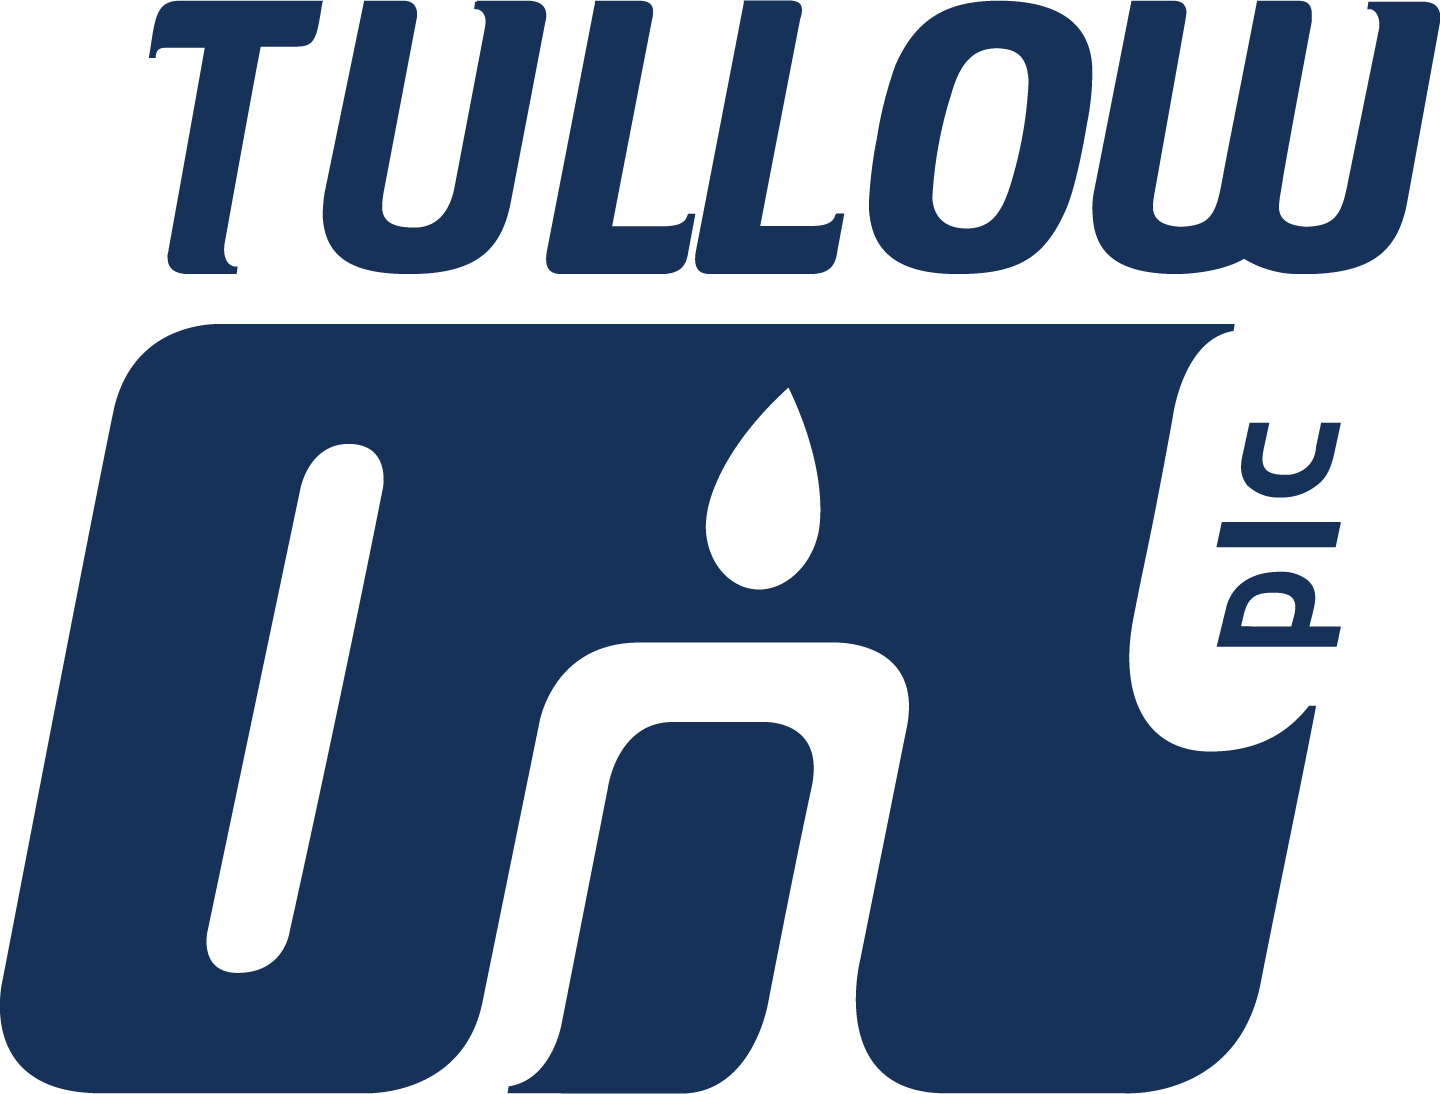 Tullow Oil Logo png